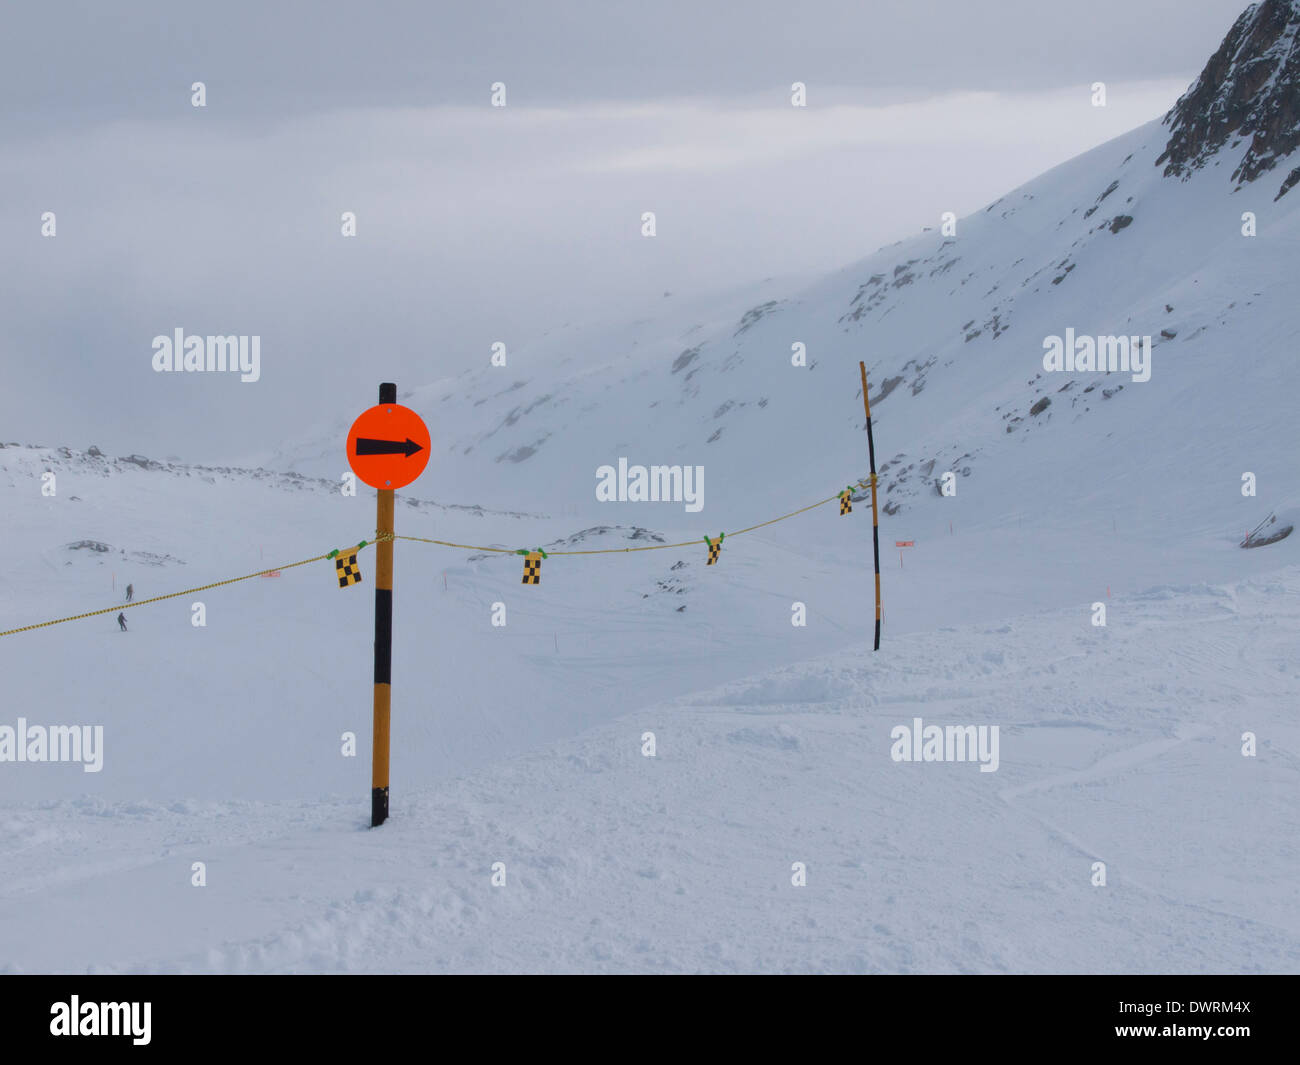 Directional Sign on an alpine ski slope in Distentis, Switzerland on Feb 21, 2013. - Stock Image